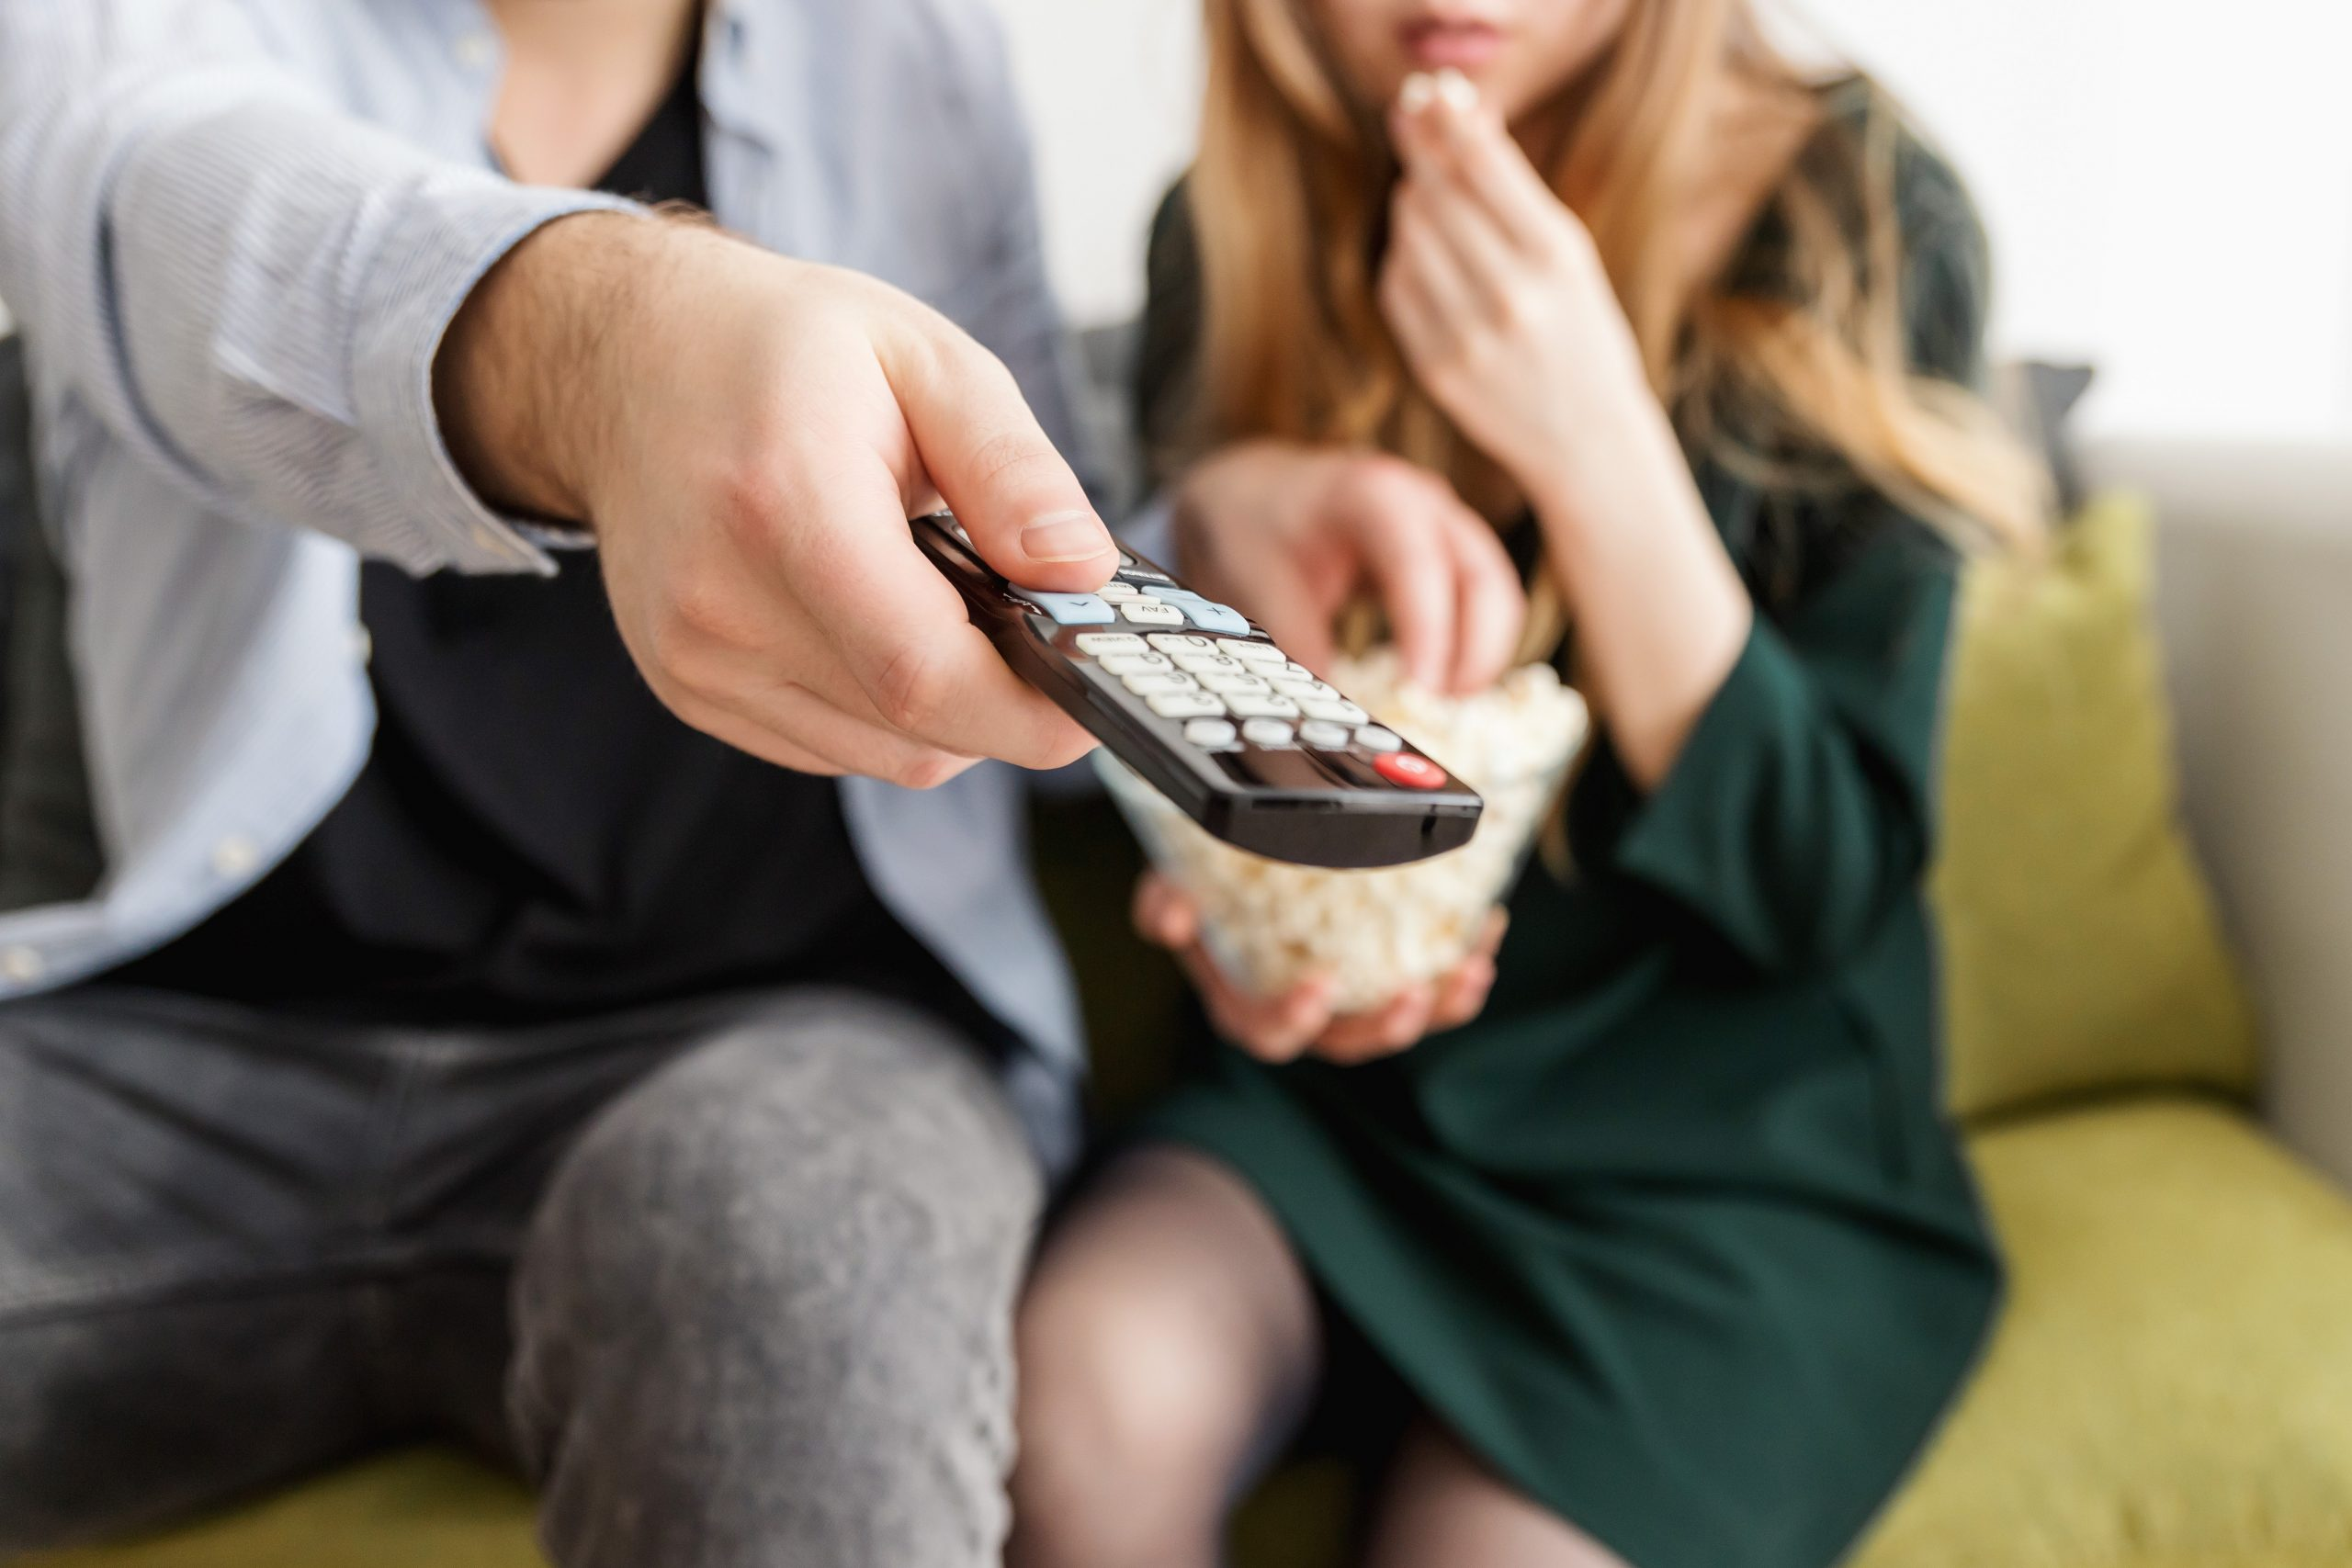 A man and a woman with a TV remote